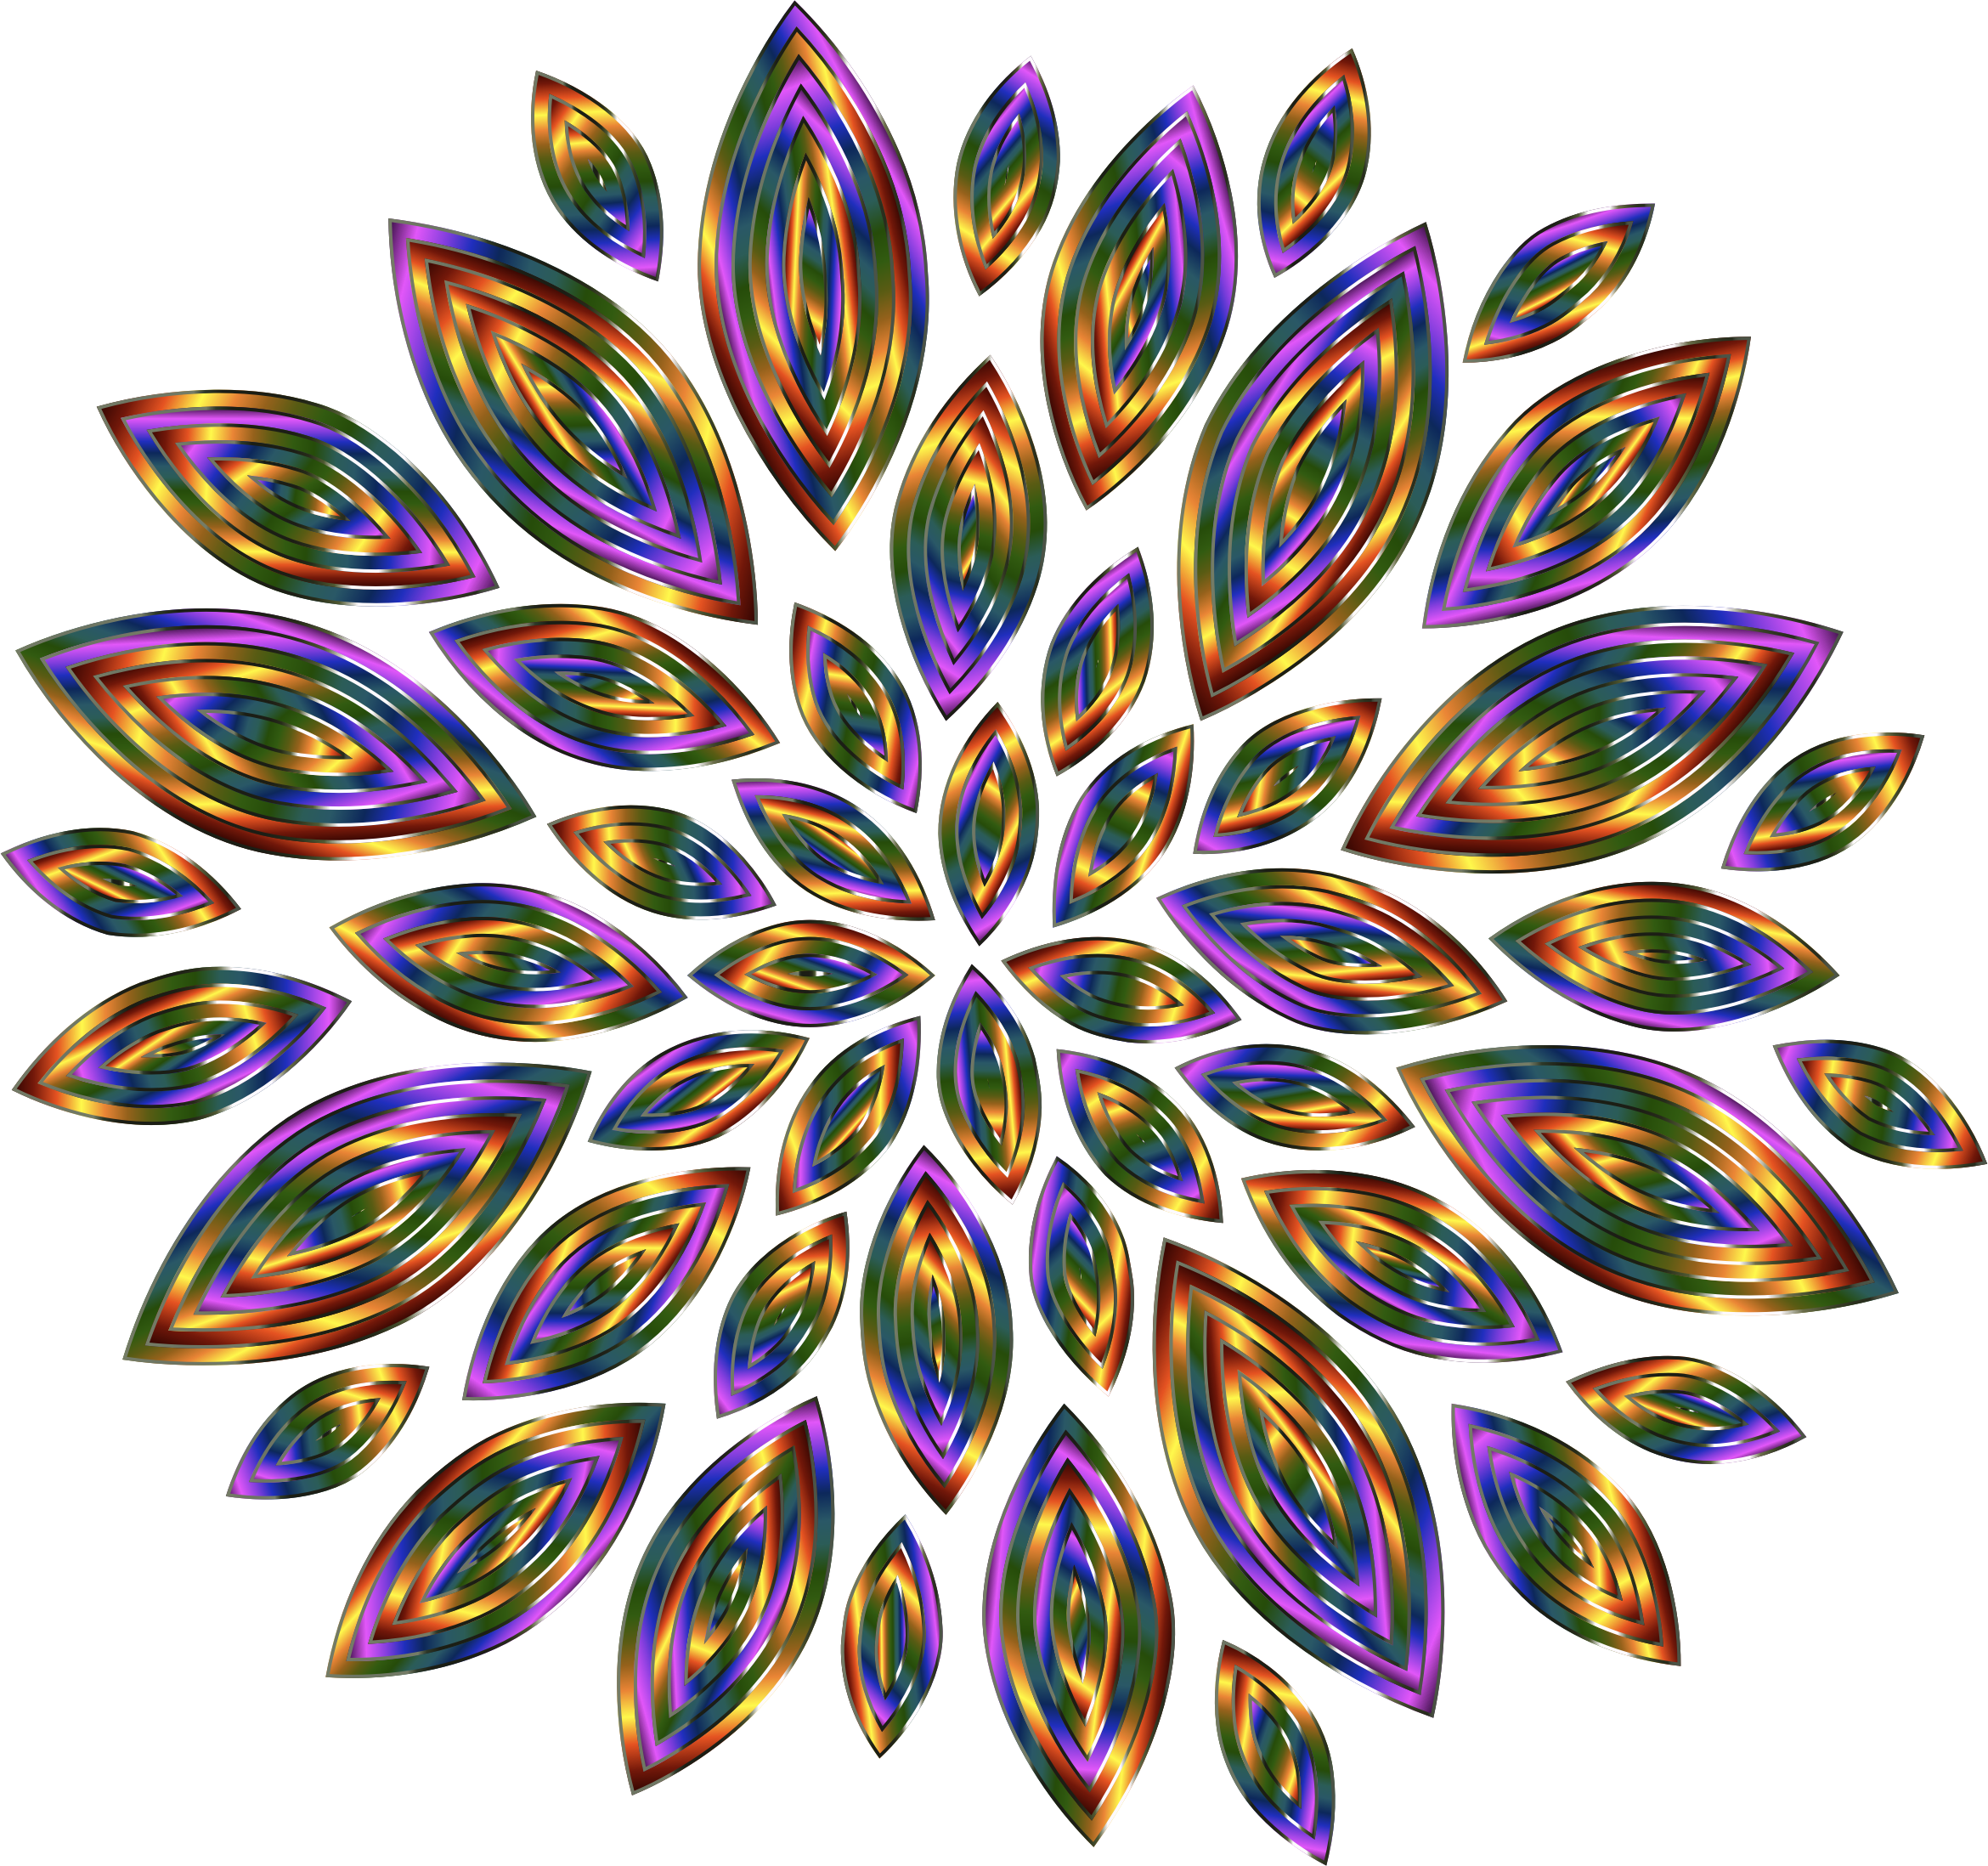 Chromatic Flower Petals 12 by GDJ